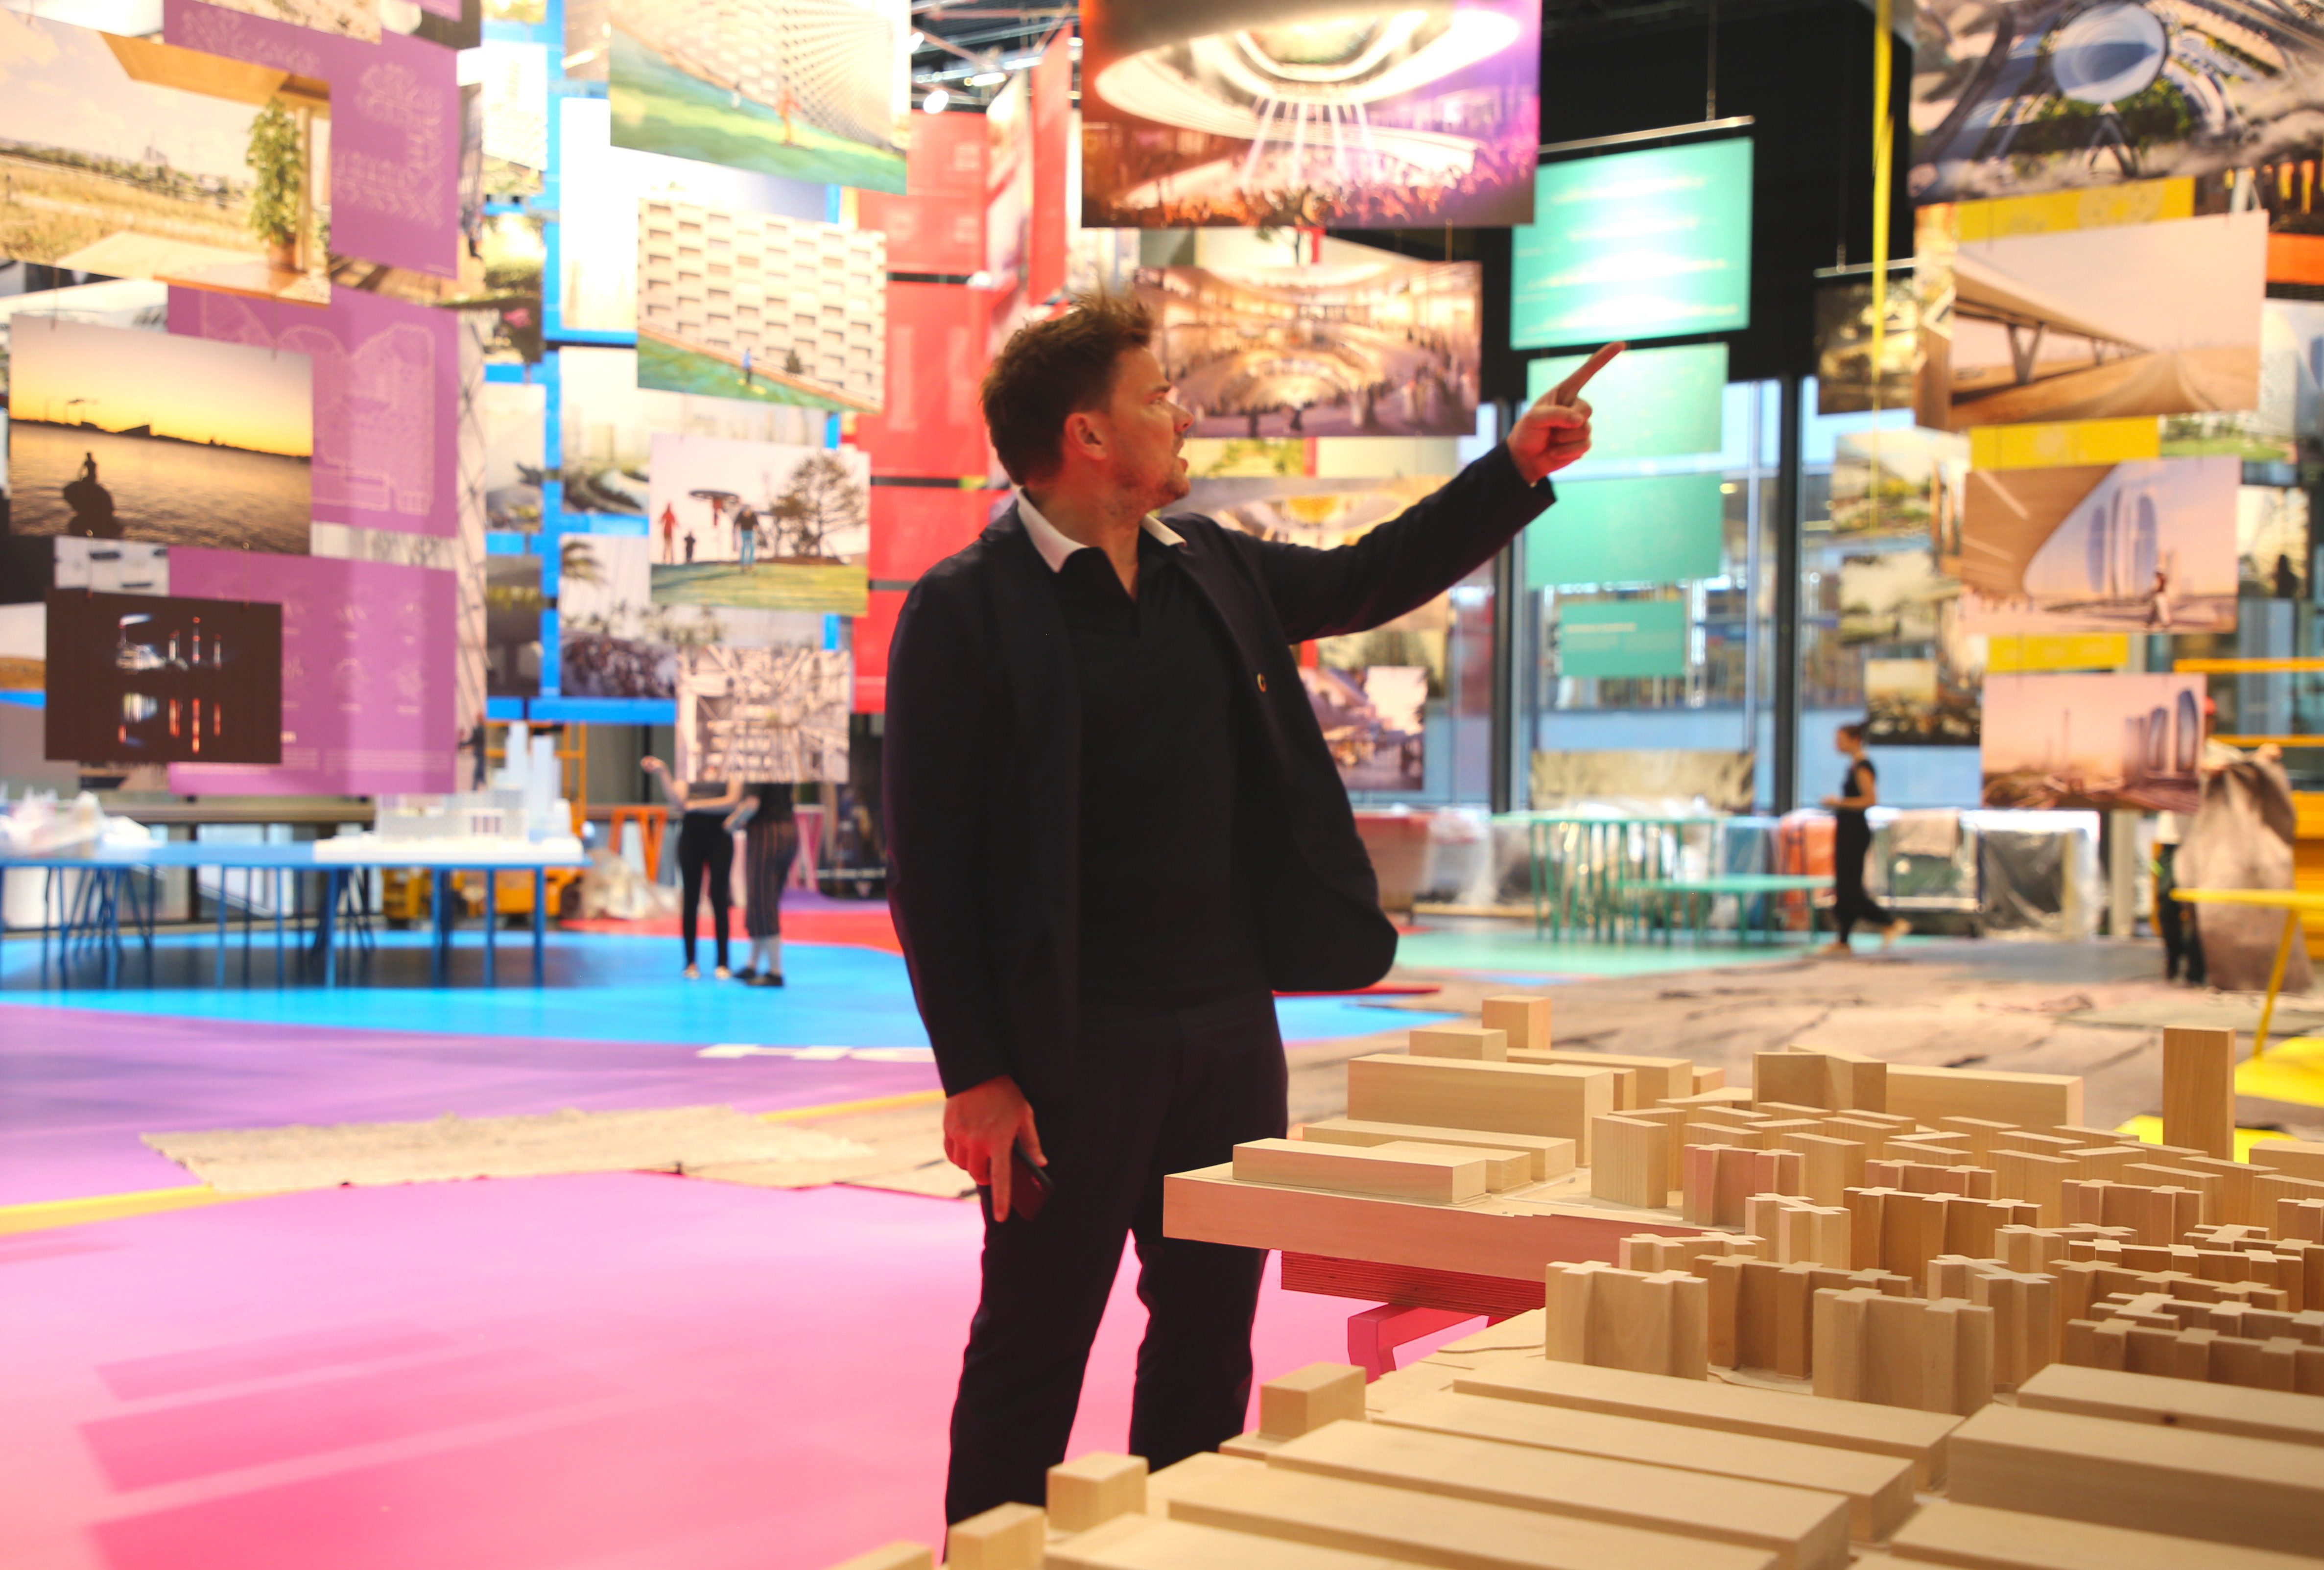 Bjarke in a sea of pink